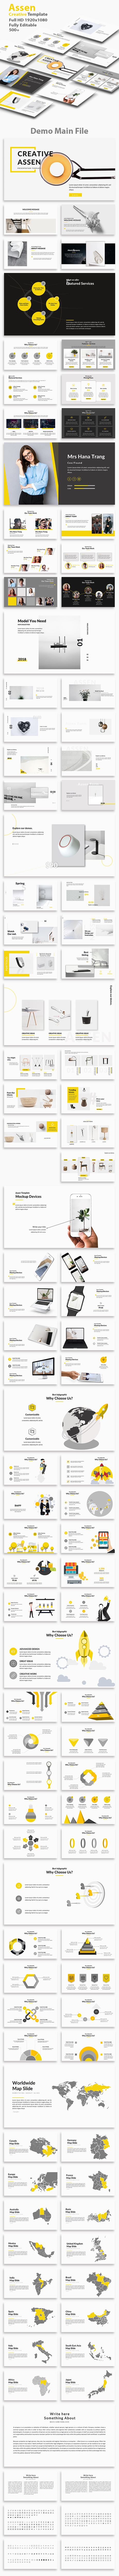 Assen Creative Google Slide Template - Google Slides Presentation Templates